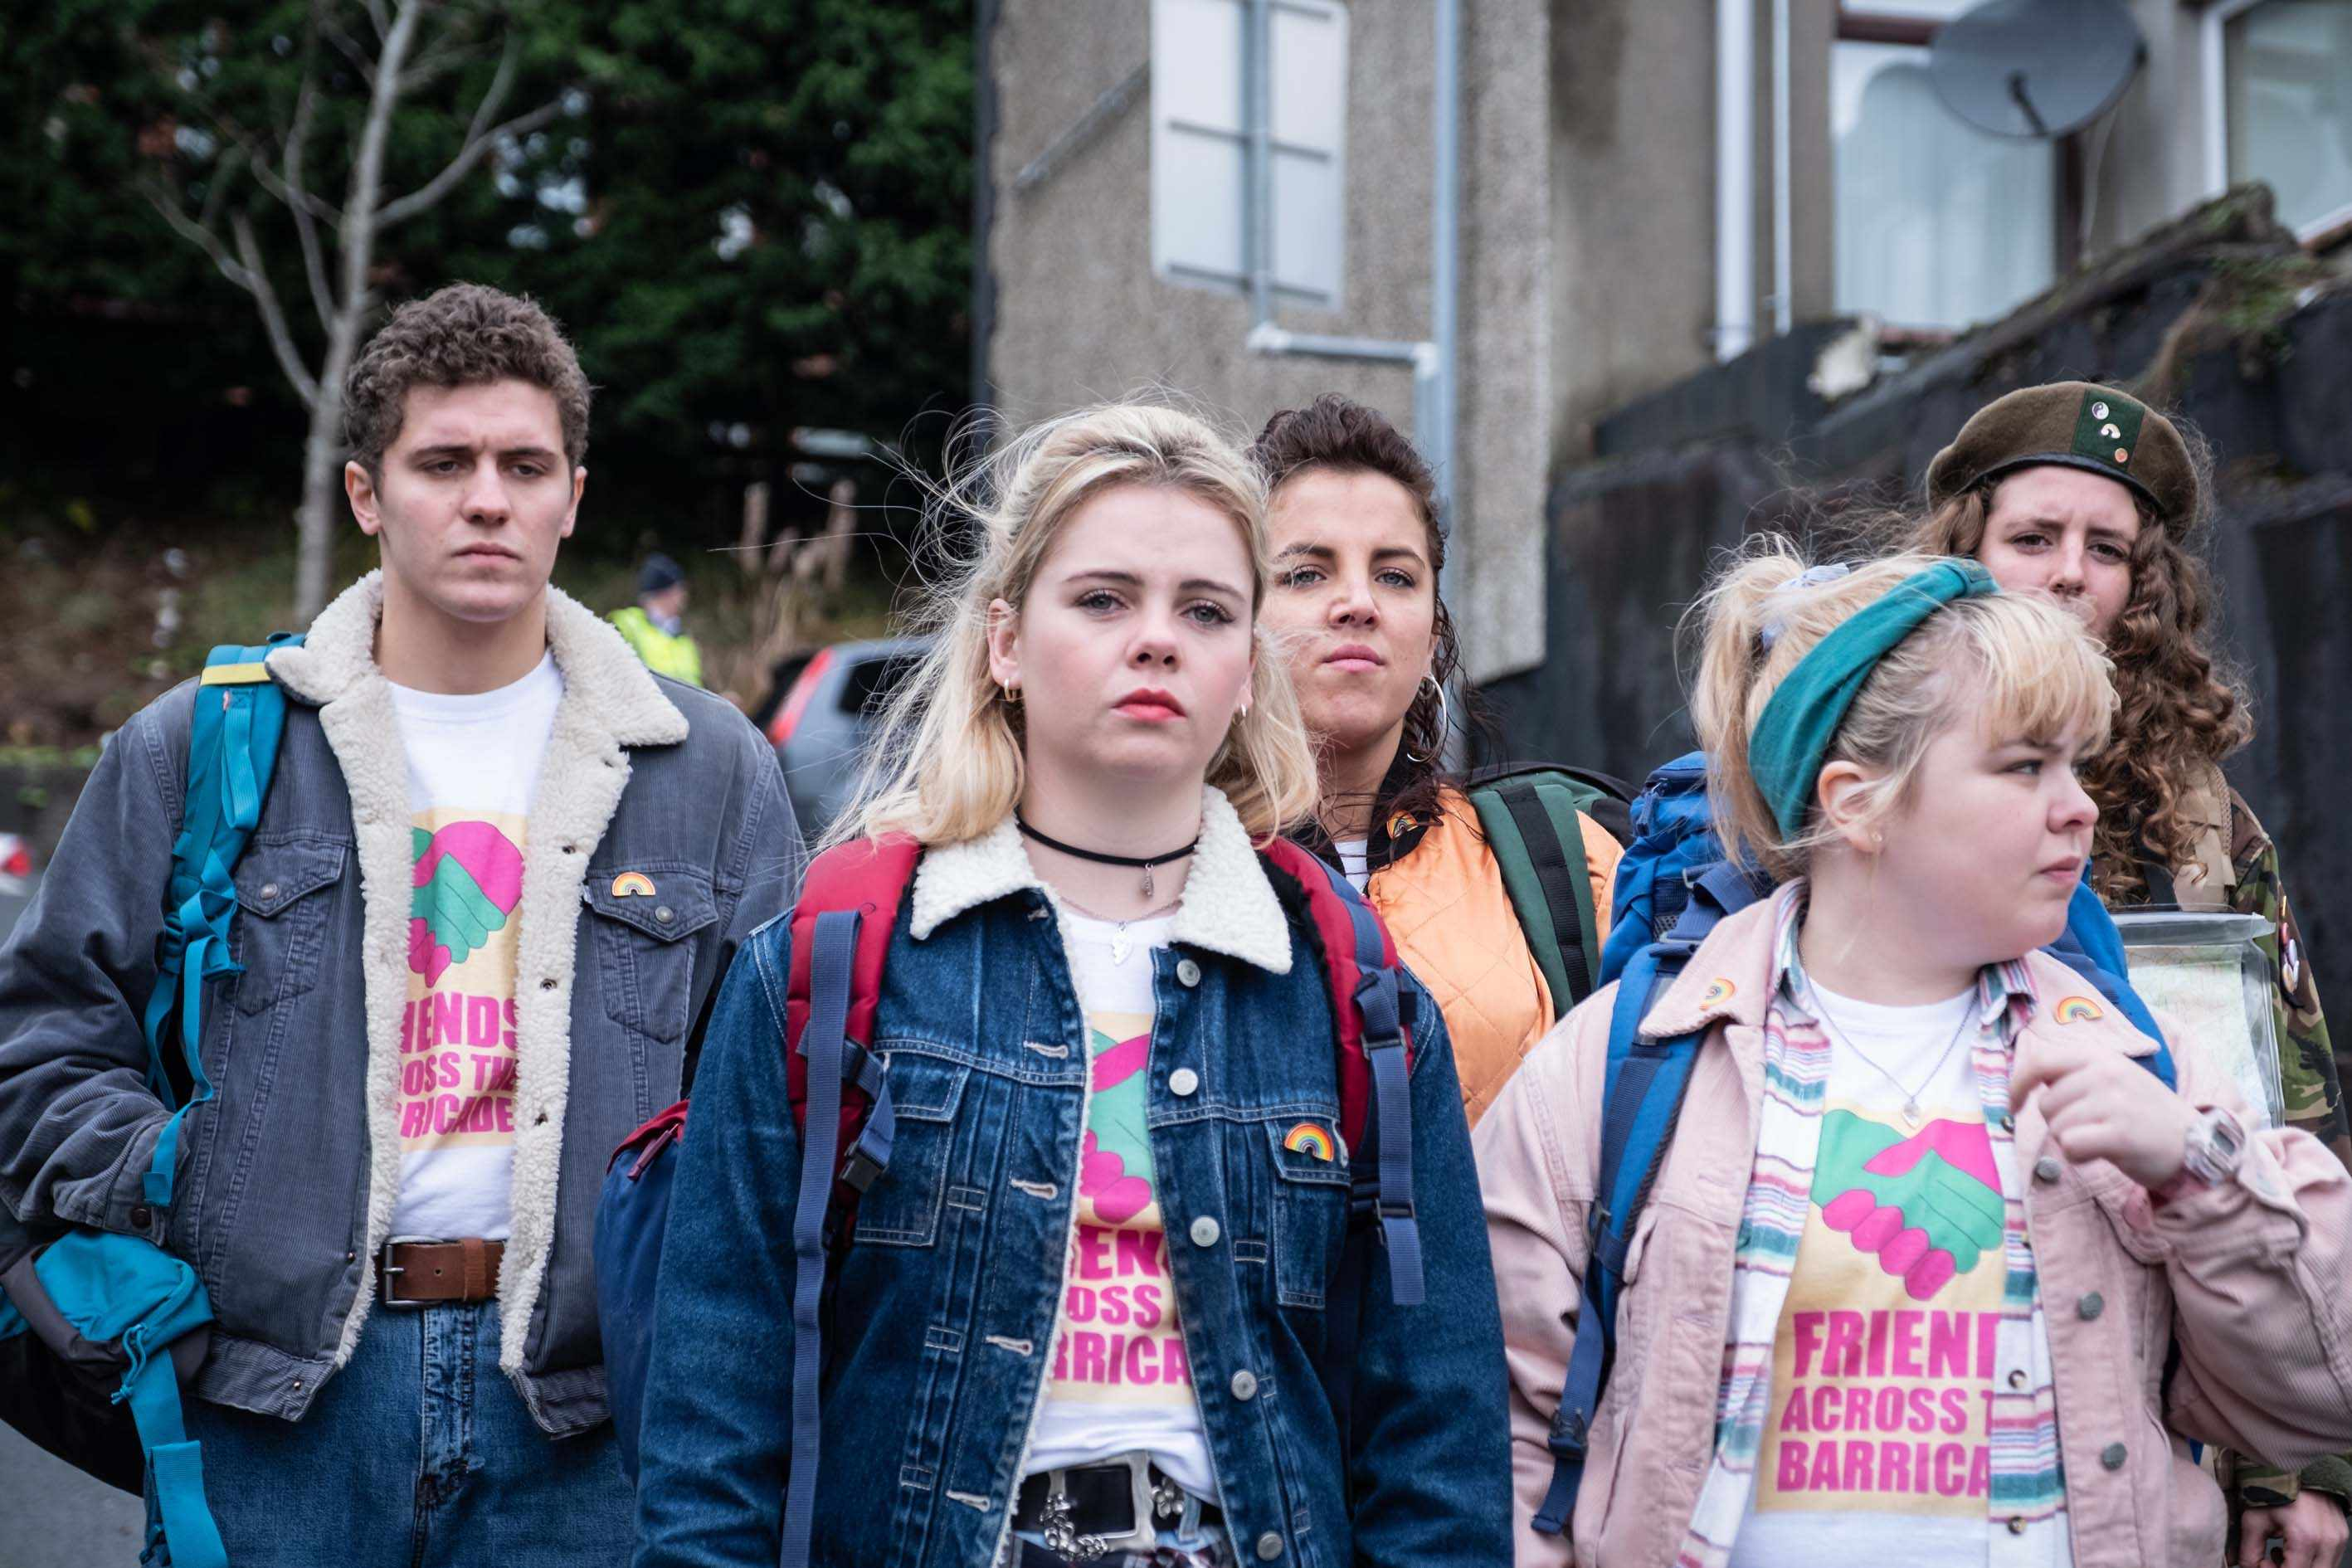 l-r:  Dylan (James Maguire), Erin (Saoirse Monica-Jackson), Michelle (Jamie-Lee O'Donnell), Clare (Nicola Coughlan) and Orla (Louisa Clare Harland)